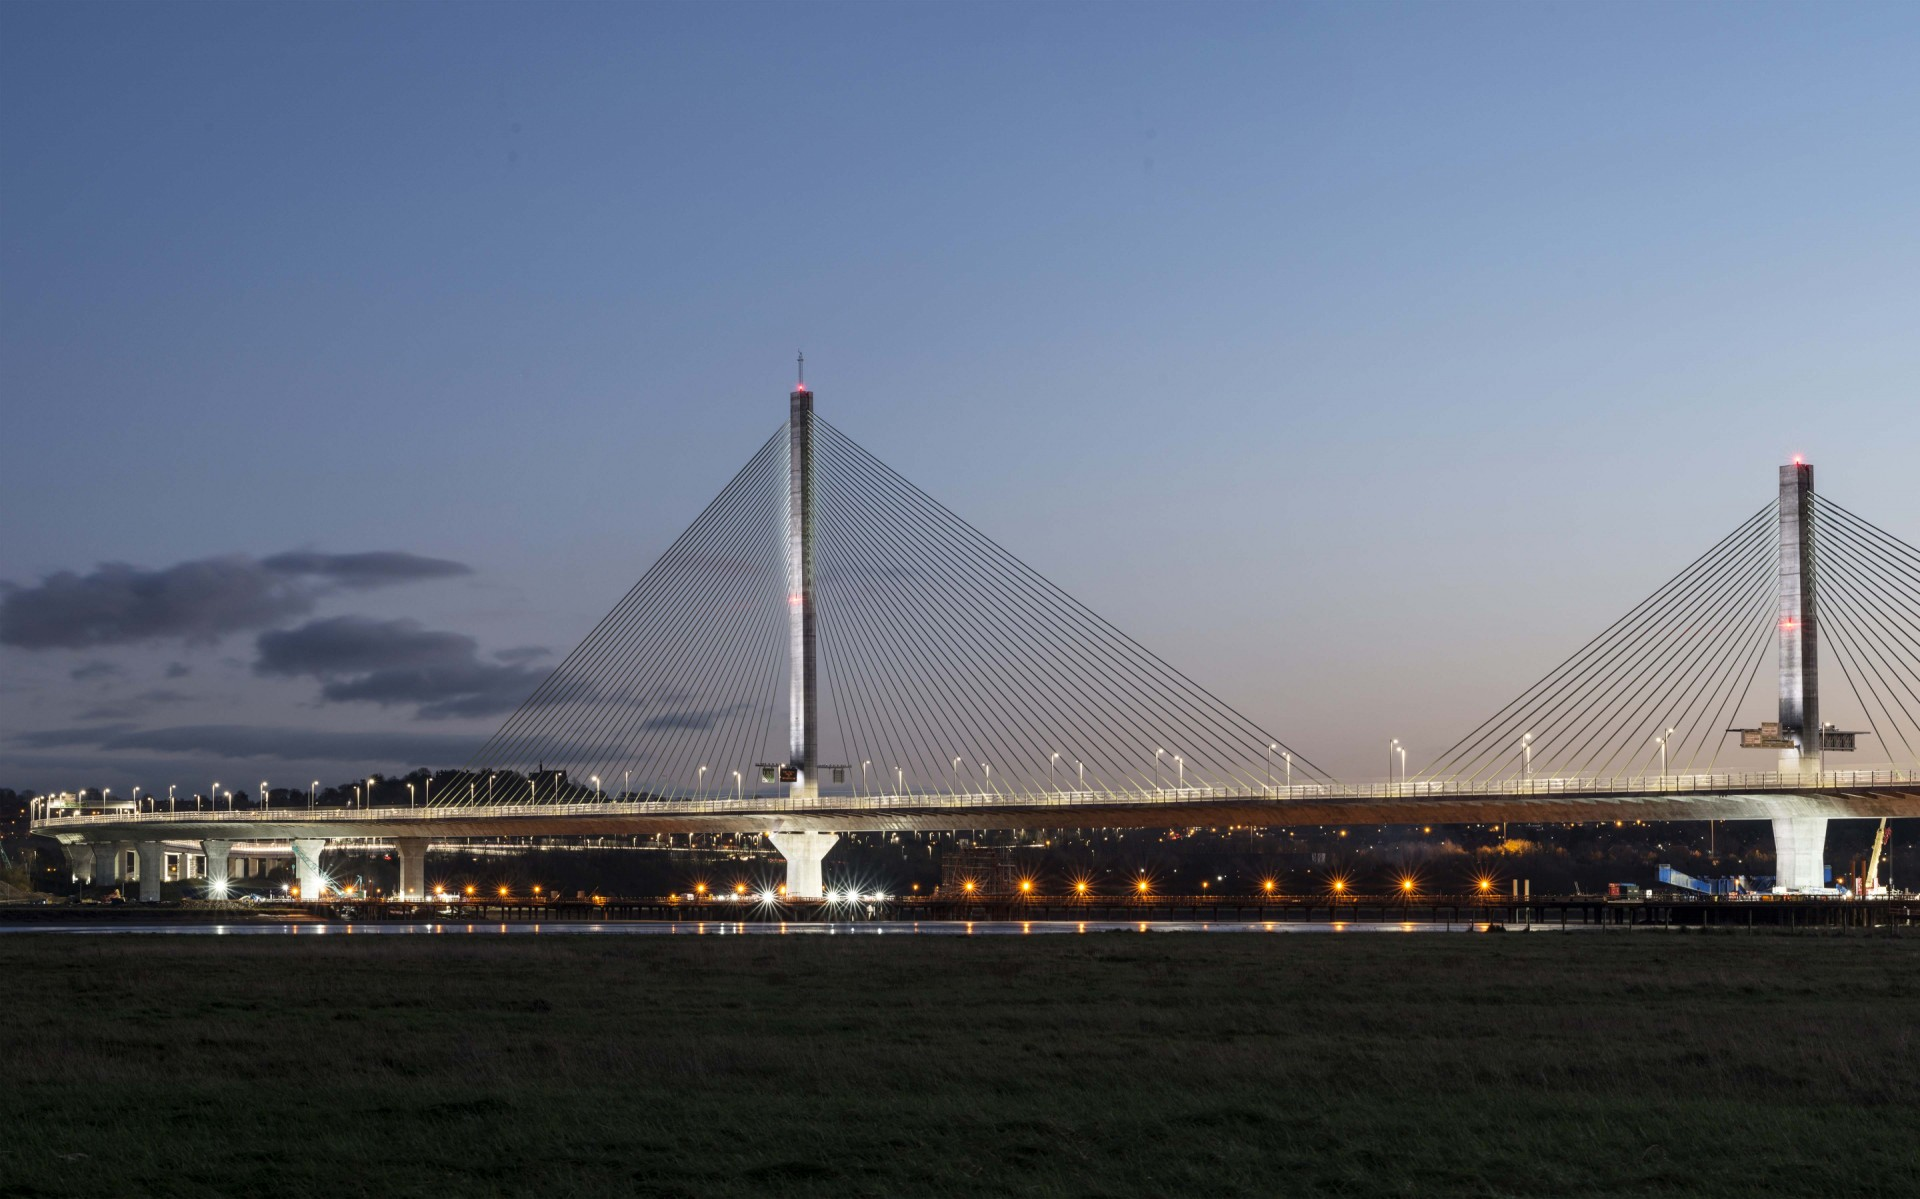 The three-pylon, cable-stayed Mersey Gateway Bridge is a six-laned landmark structure in northwest England, providing a much-needed new crossing of the River Mersey.  – James Newton